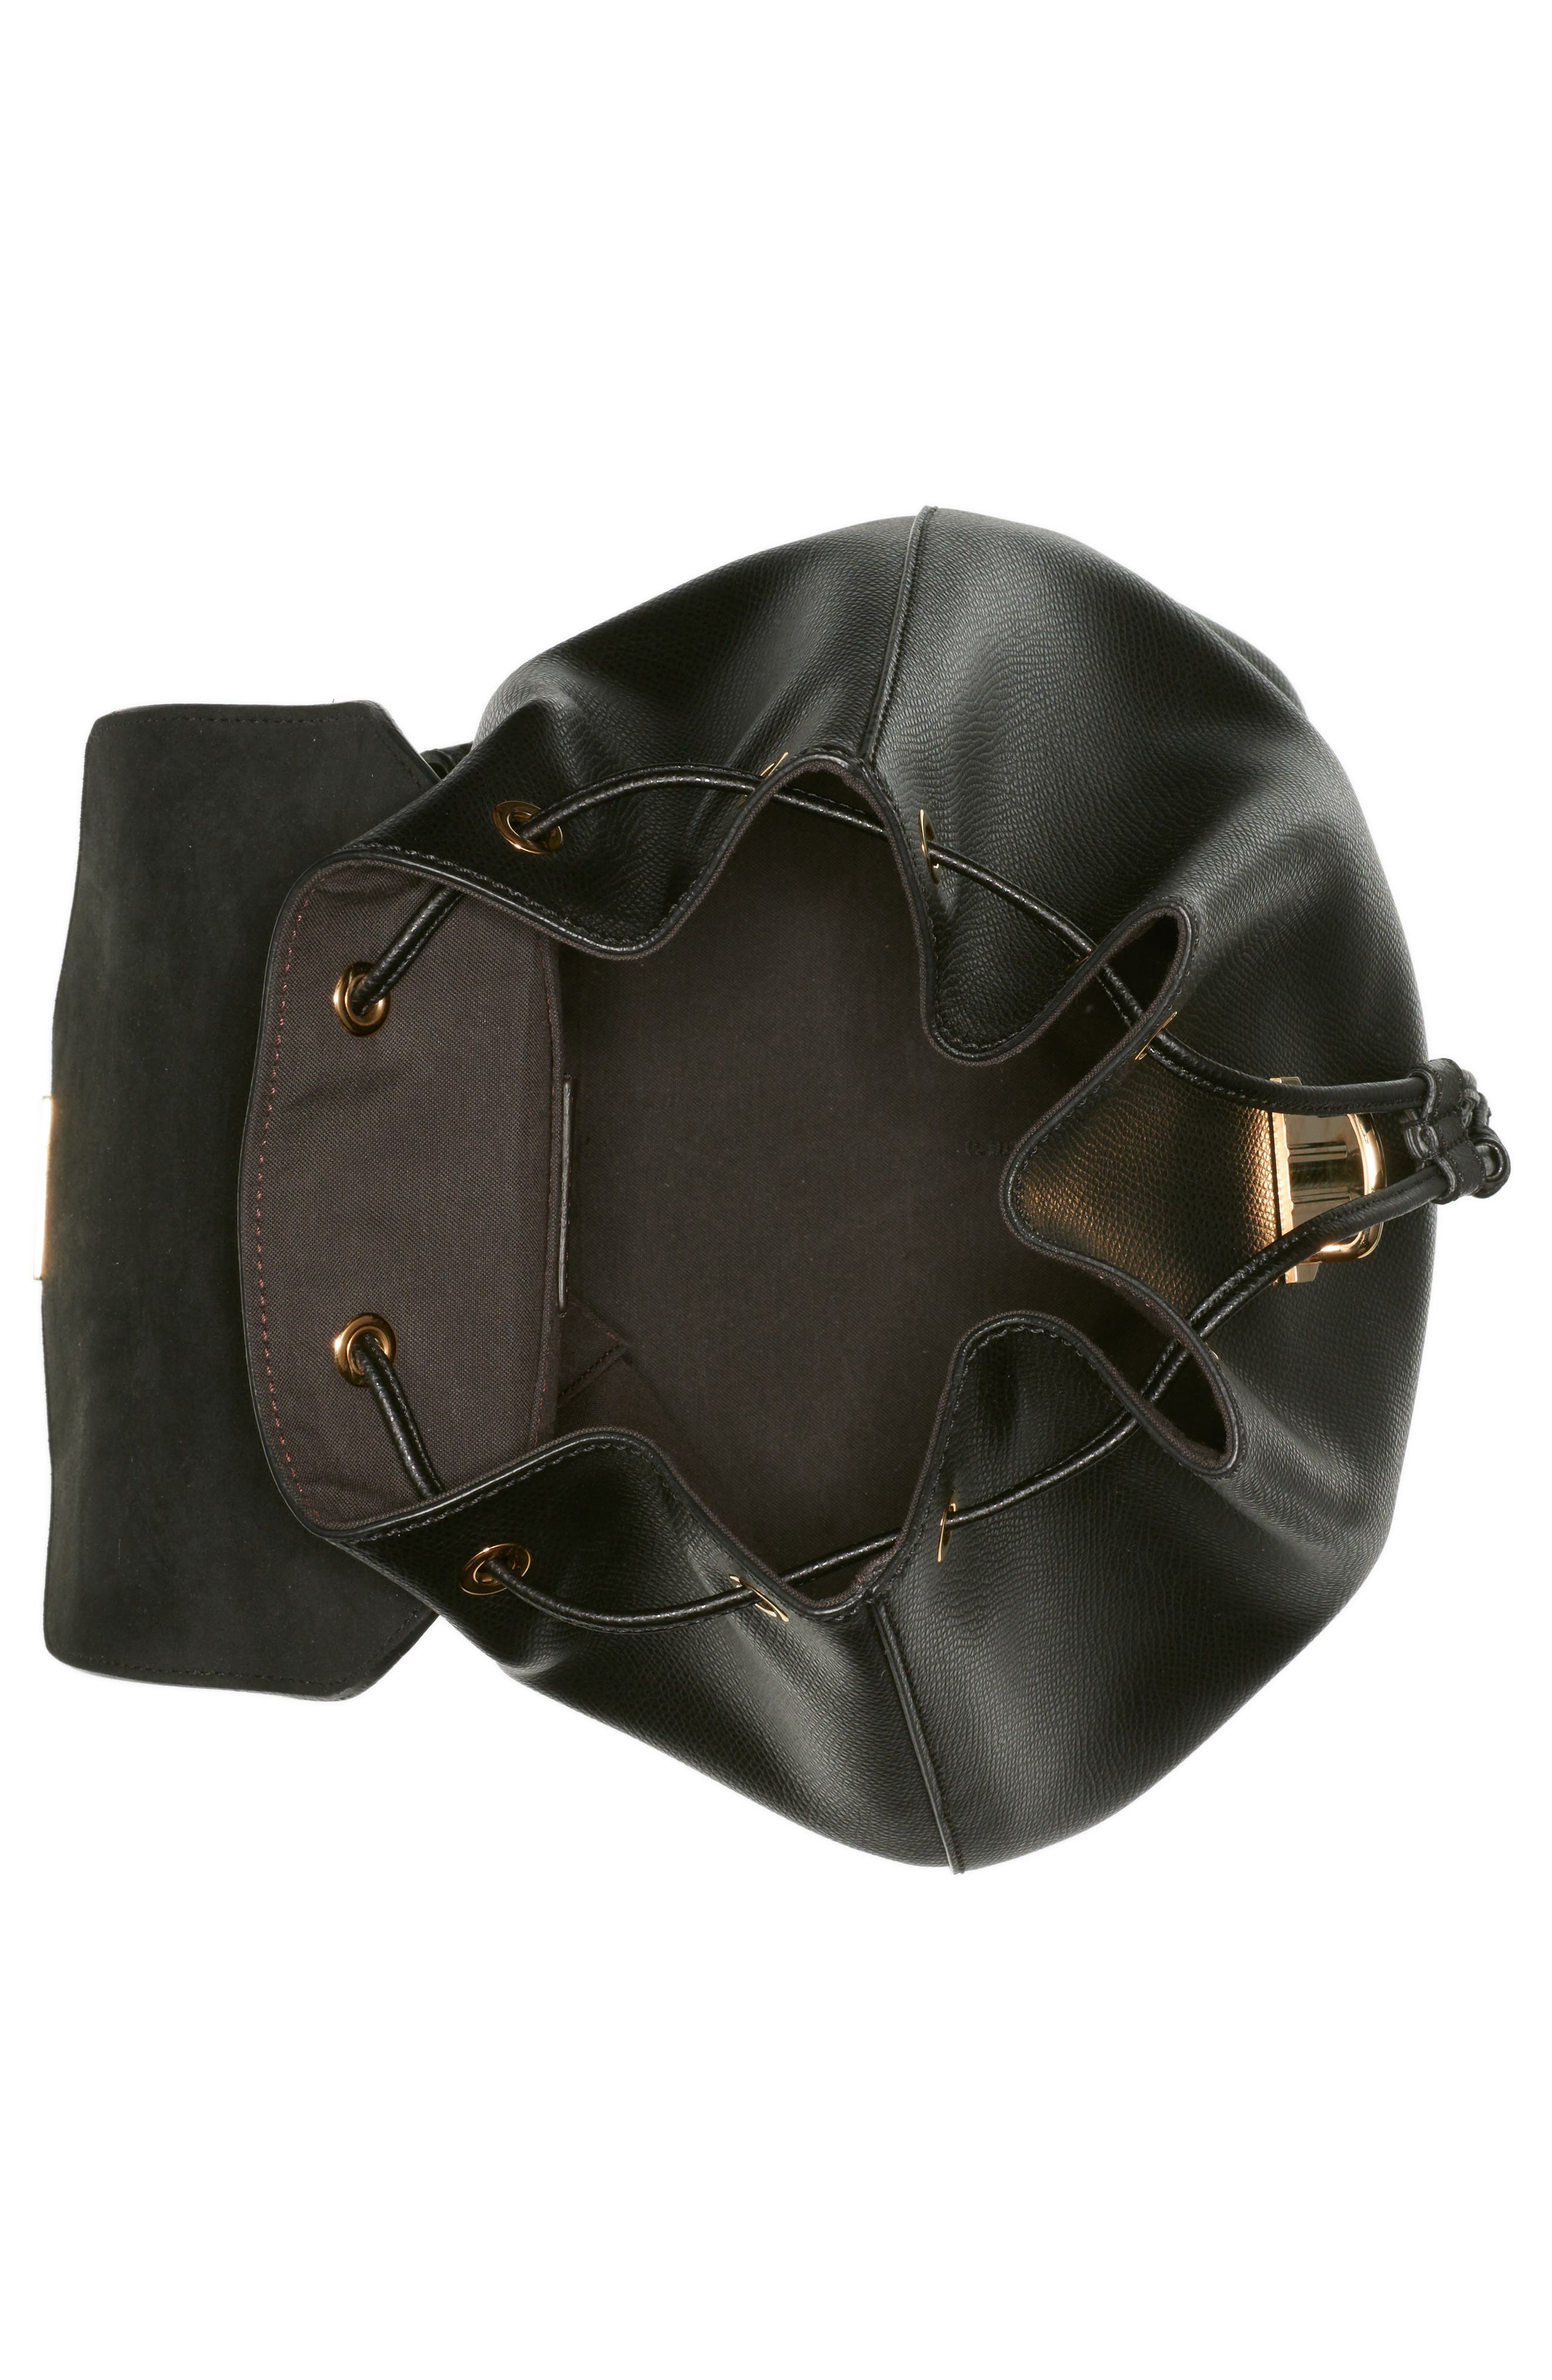 Cruise Calfskin Leather Backpack,                             Alternate thumbnail 3, color,                             006